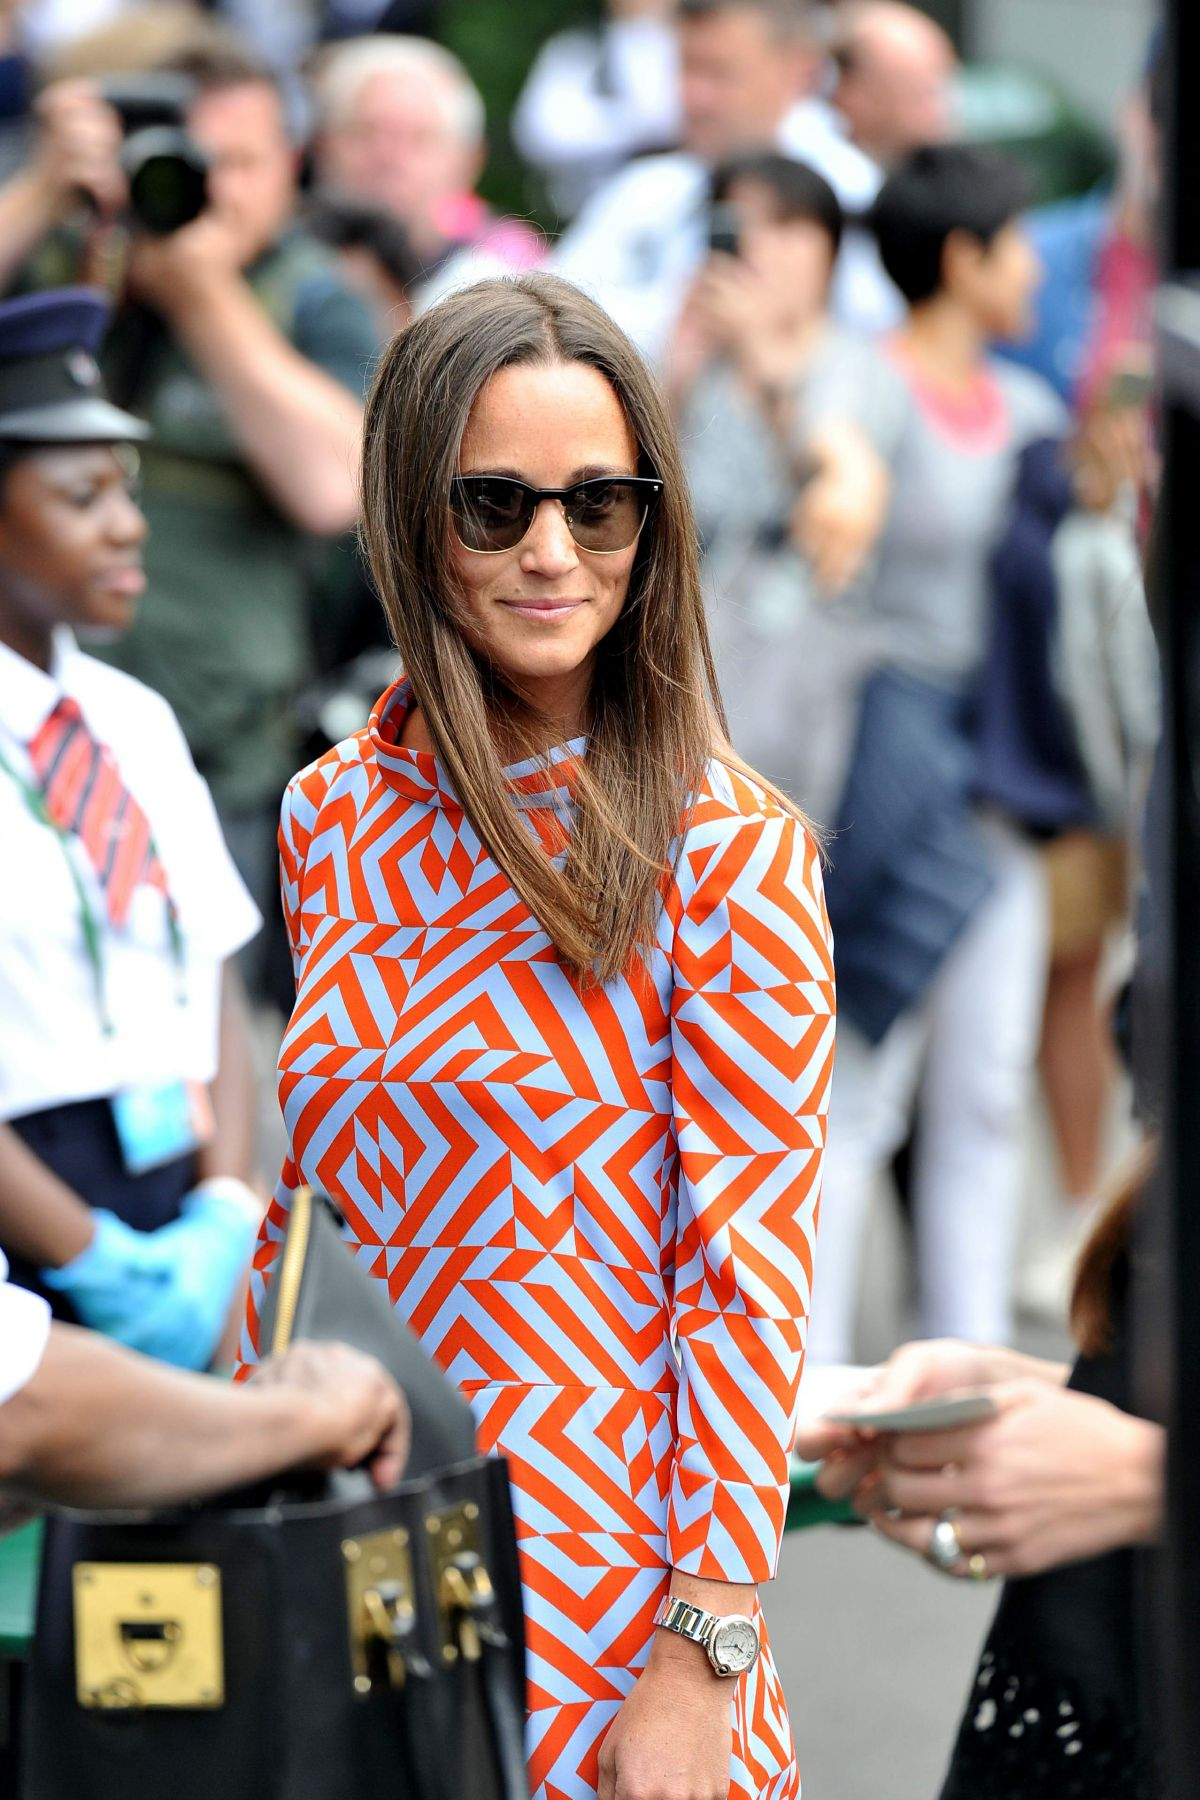 PIPPA MIDDLETON at Championships in Wimbledon 07/04/2016